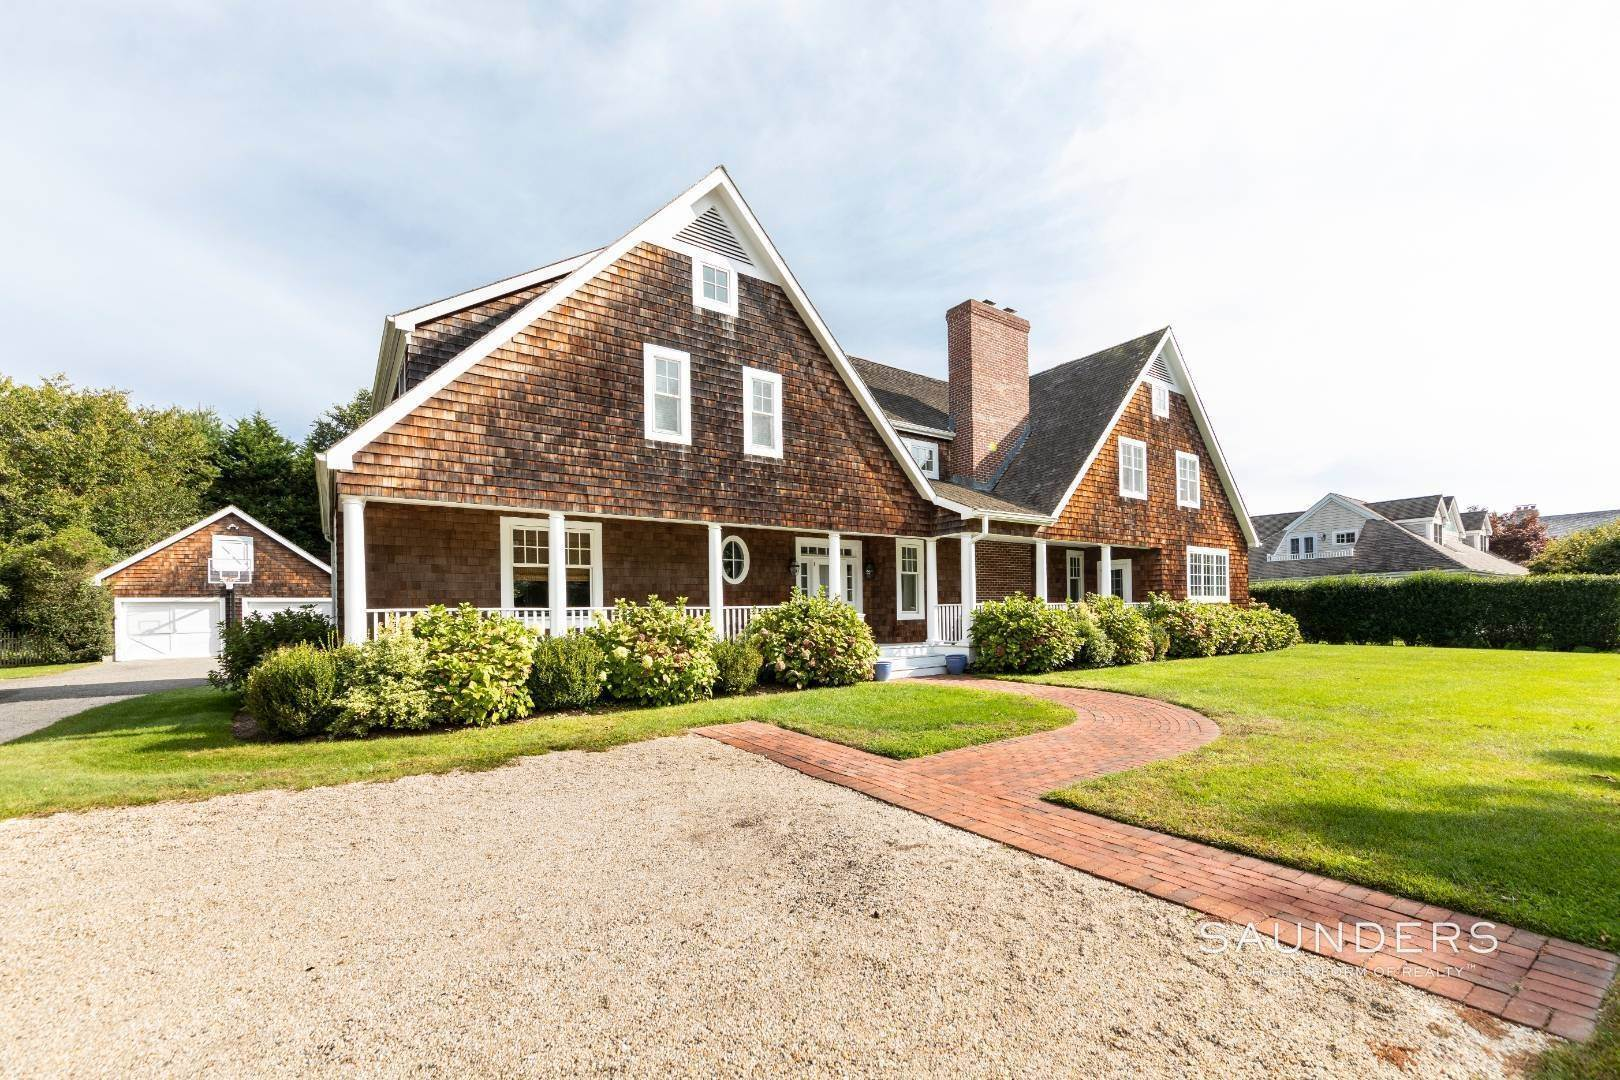 Single Family Homes at Beautiful Village Lane - 2 Weeks East Hampton, East Hampton Town, NY 11937